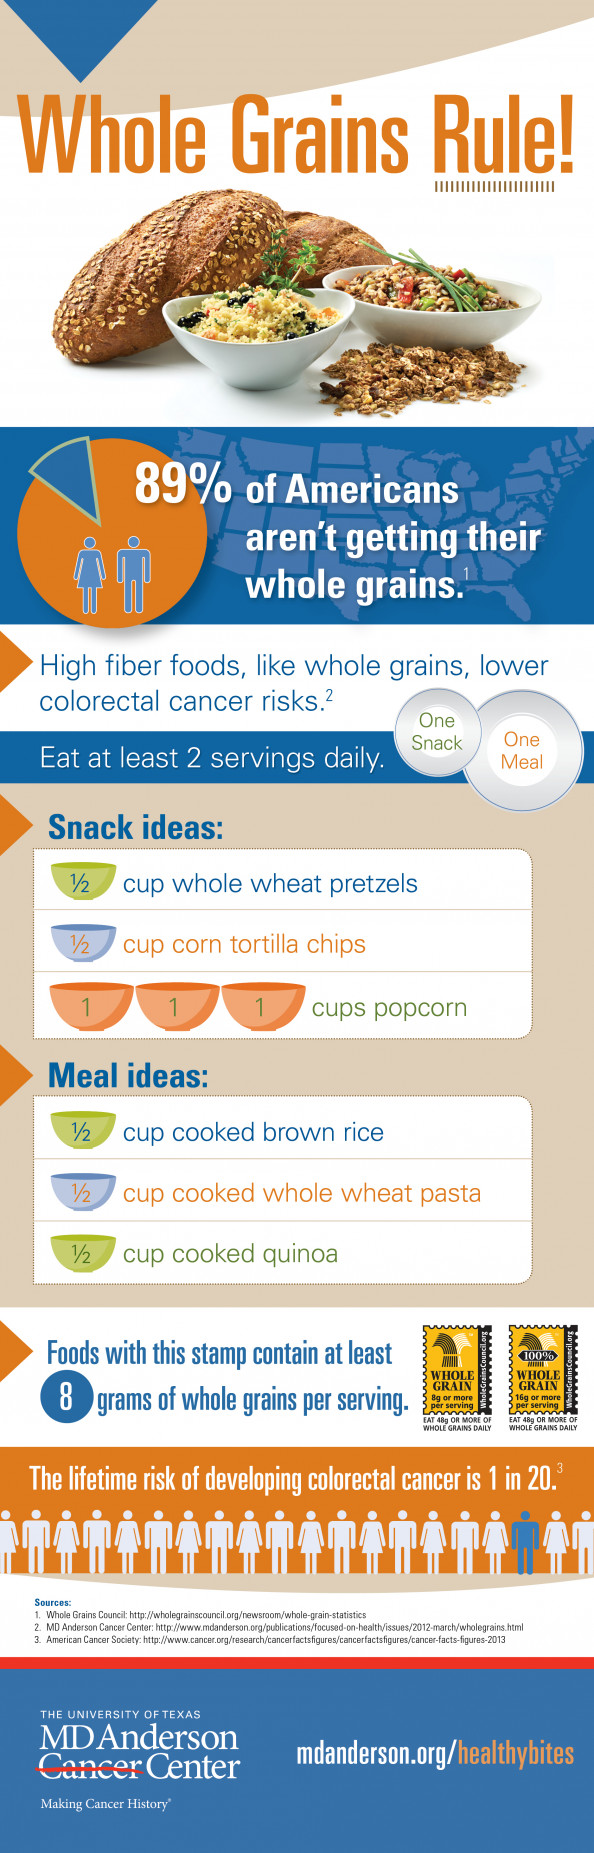 Easy Ways to Add Whole Grains Infographic